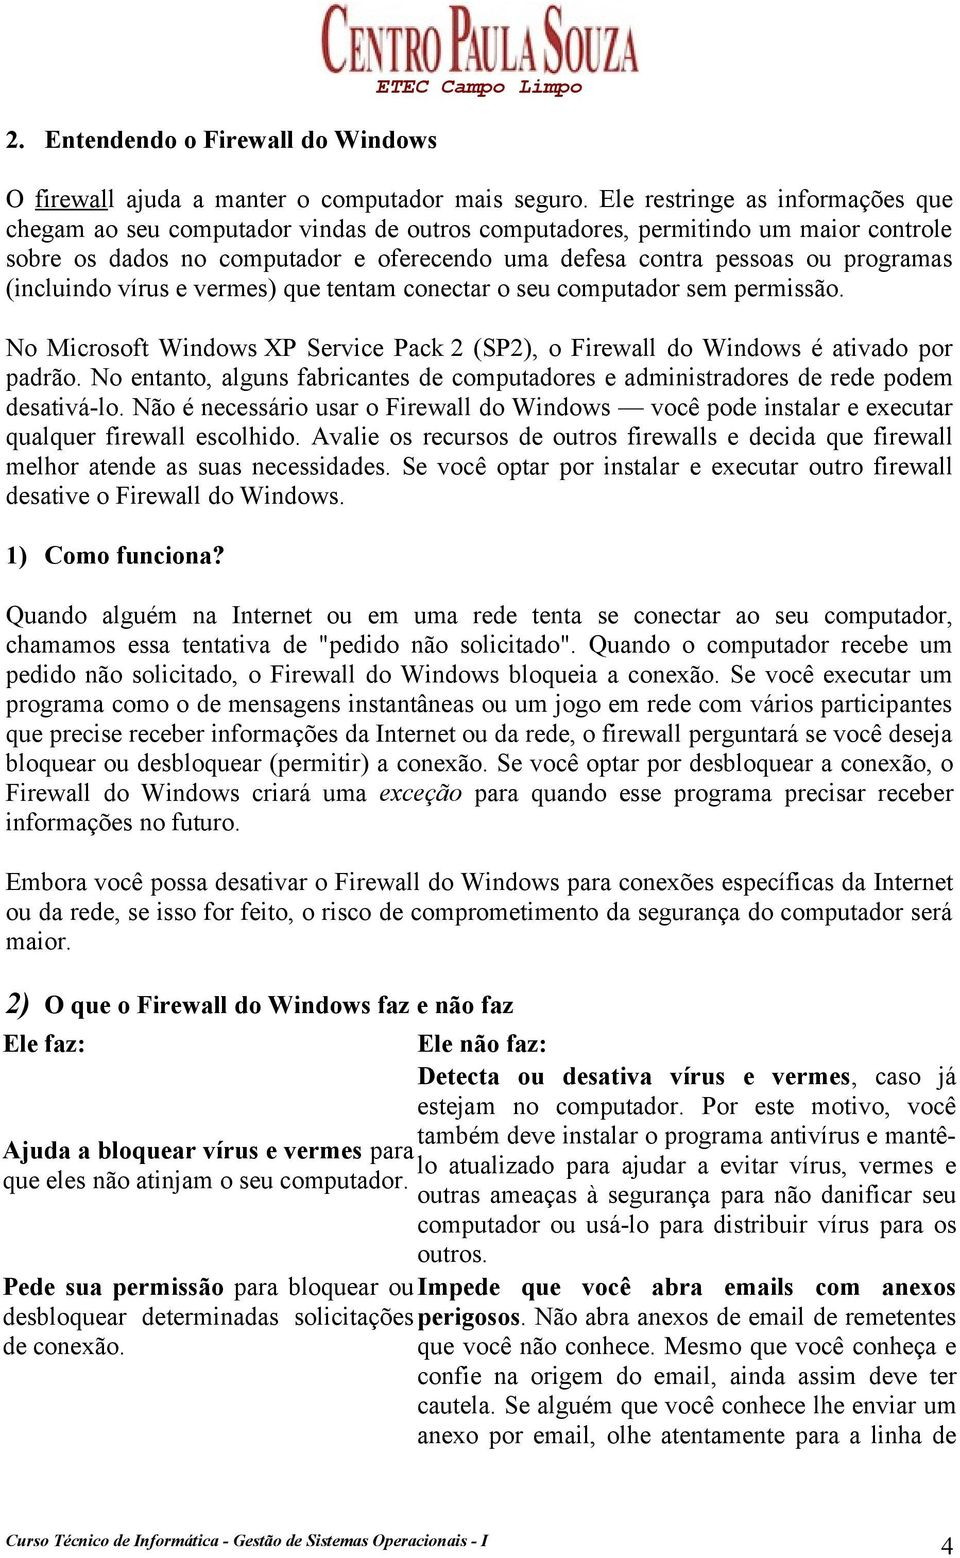 (incluindo vírus e vermes) que tentam conectar o seu computador sem permissão. No Microsoft Windows XP Service Pack 2 (SP2), o Firewall do Windows é ativado por padrão.